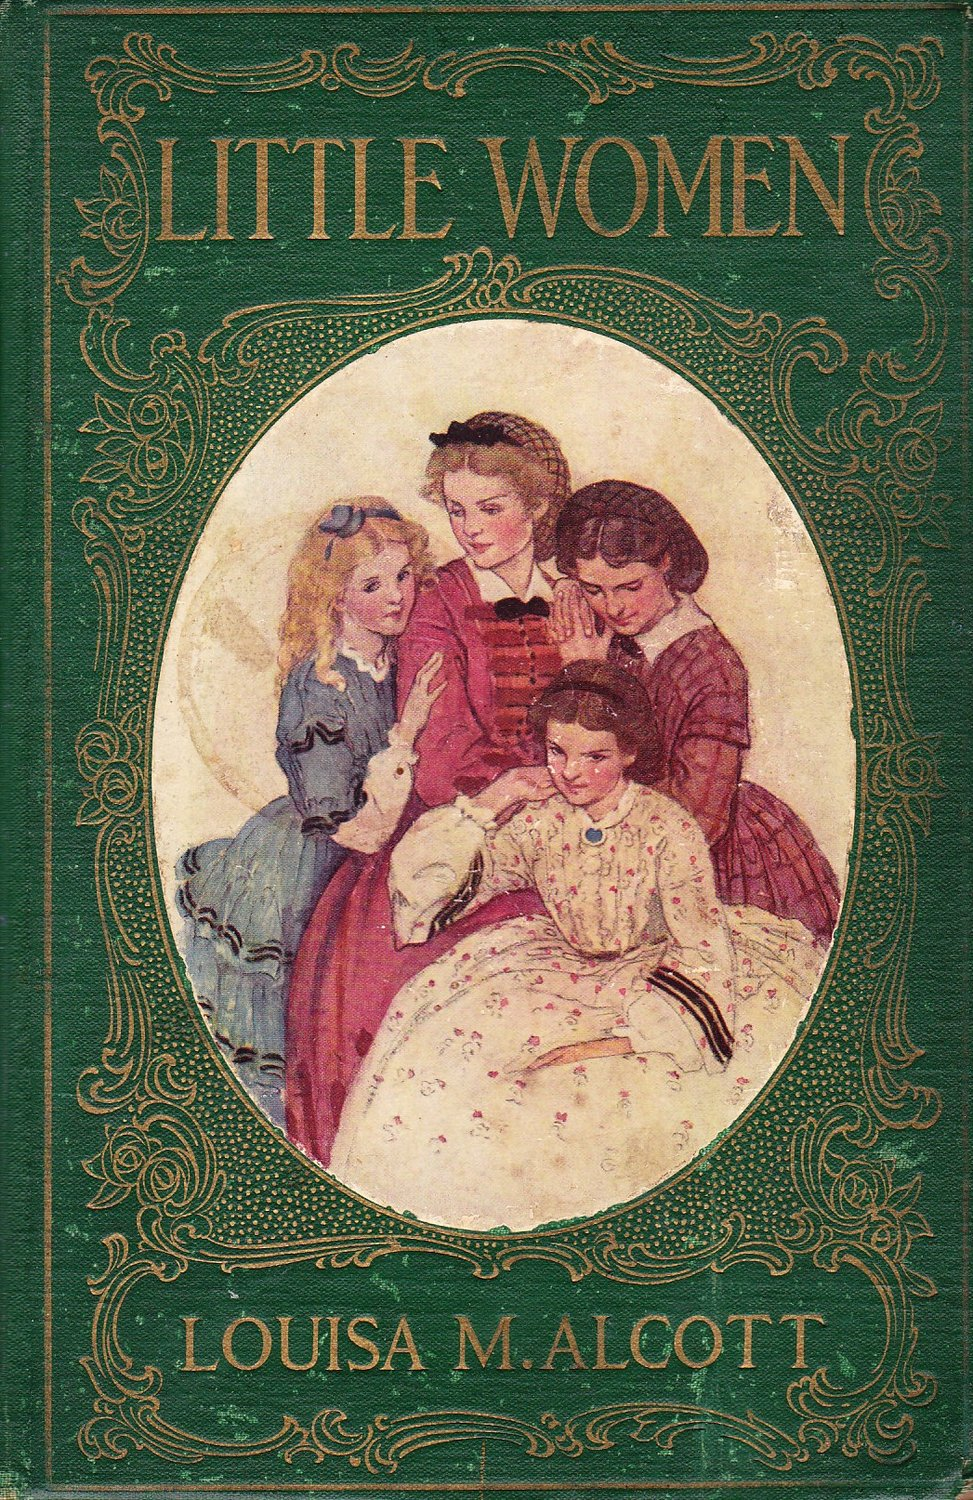 """Little Women,"" by Louisa May Alcott is considered literary comfort food for many."